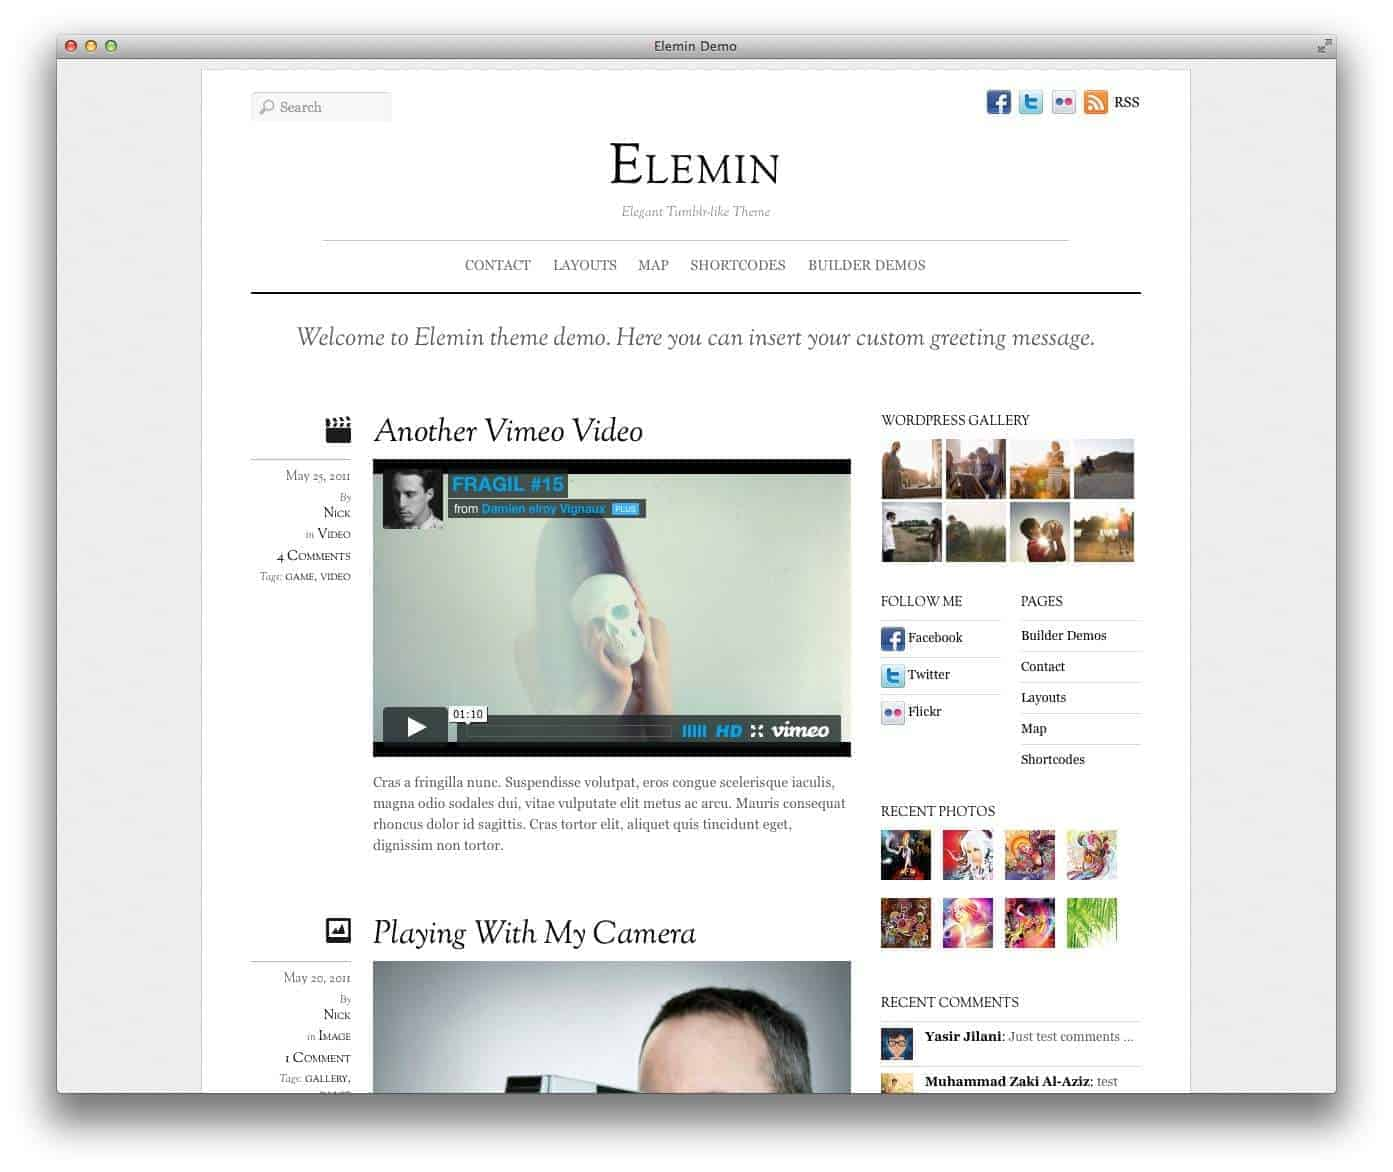 elemin-fashion-wp-theme